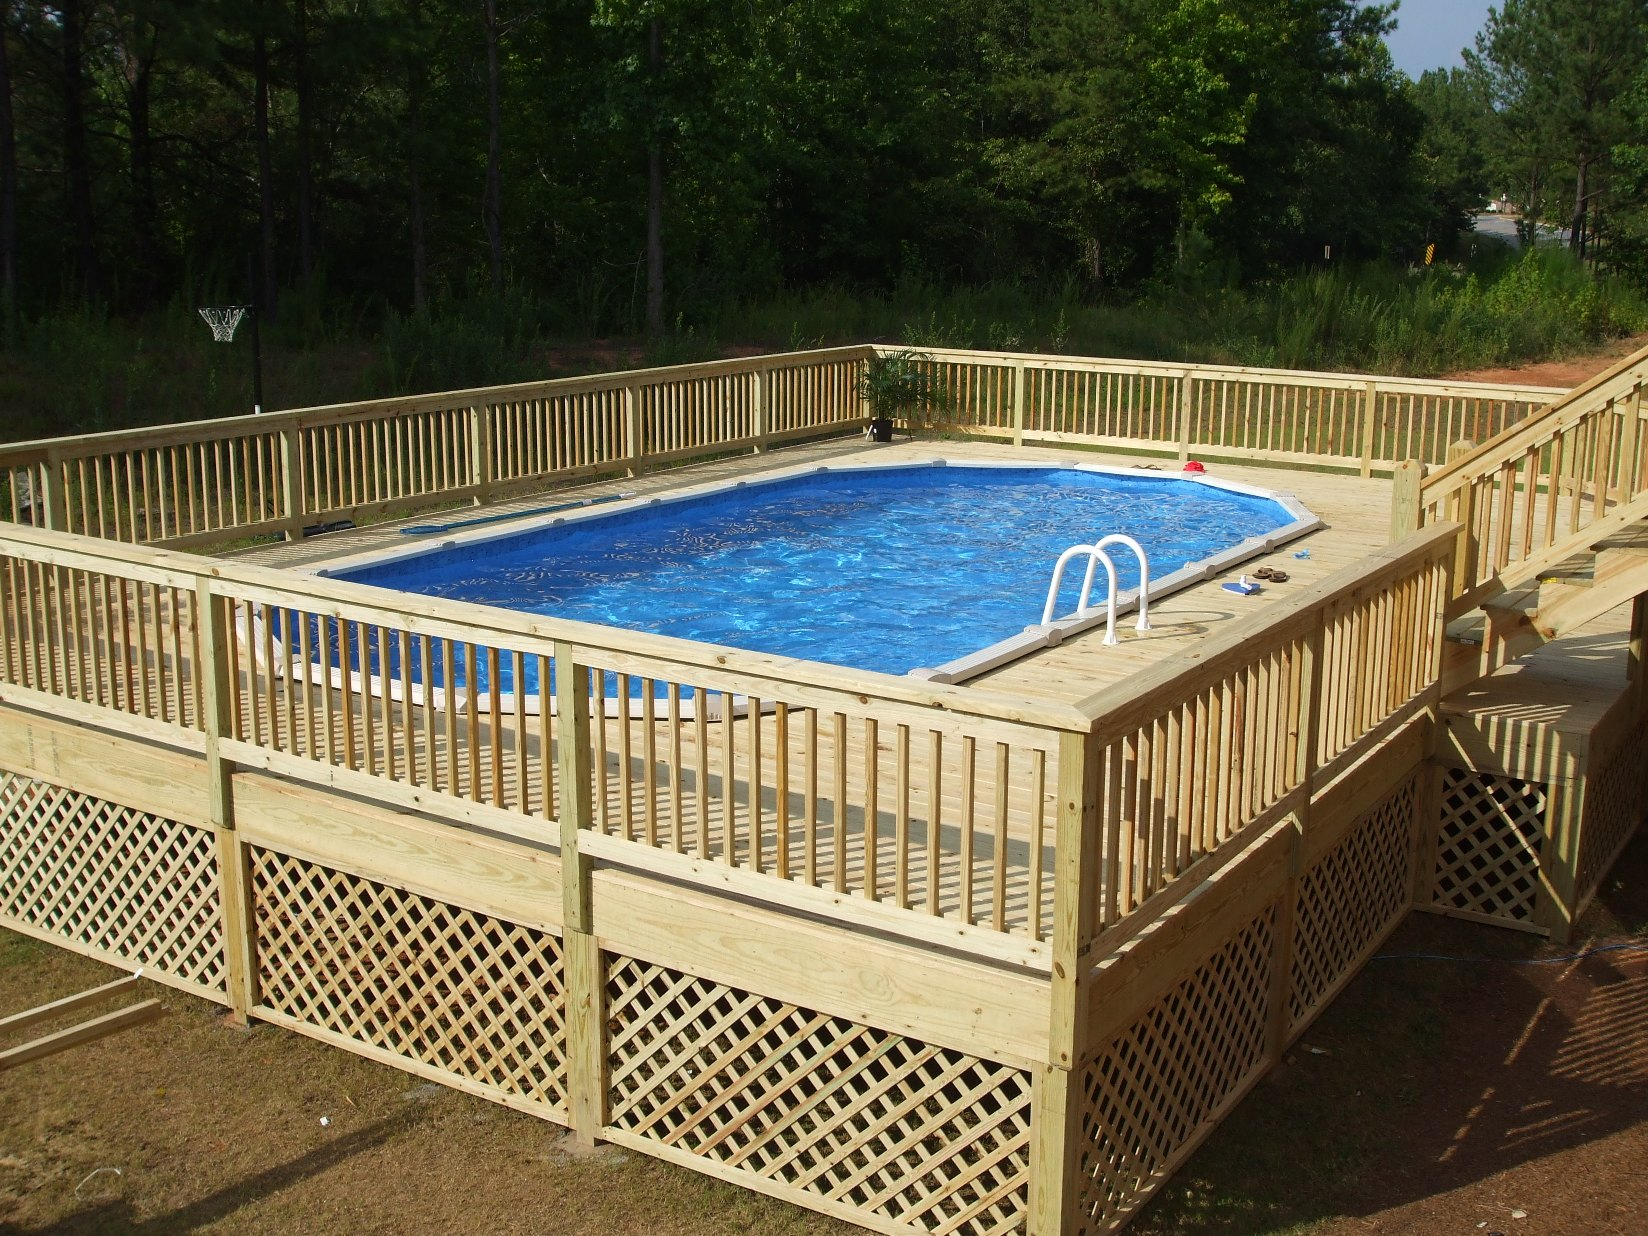 General contractor azteca outdoor atlanta ga deck pool for Above ground pool decks las vegas